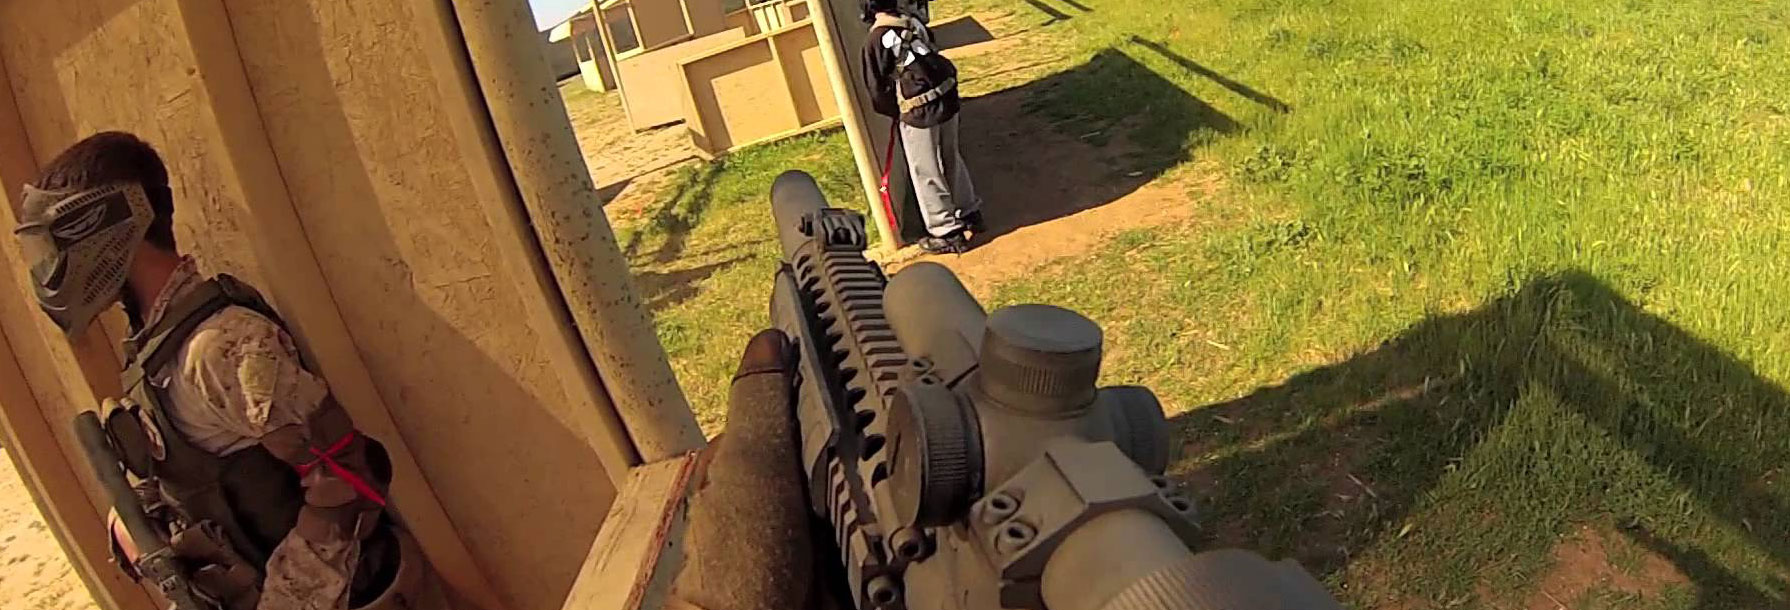 airsoft_1790x610